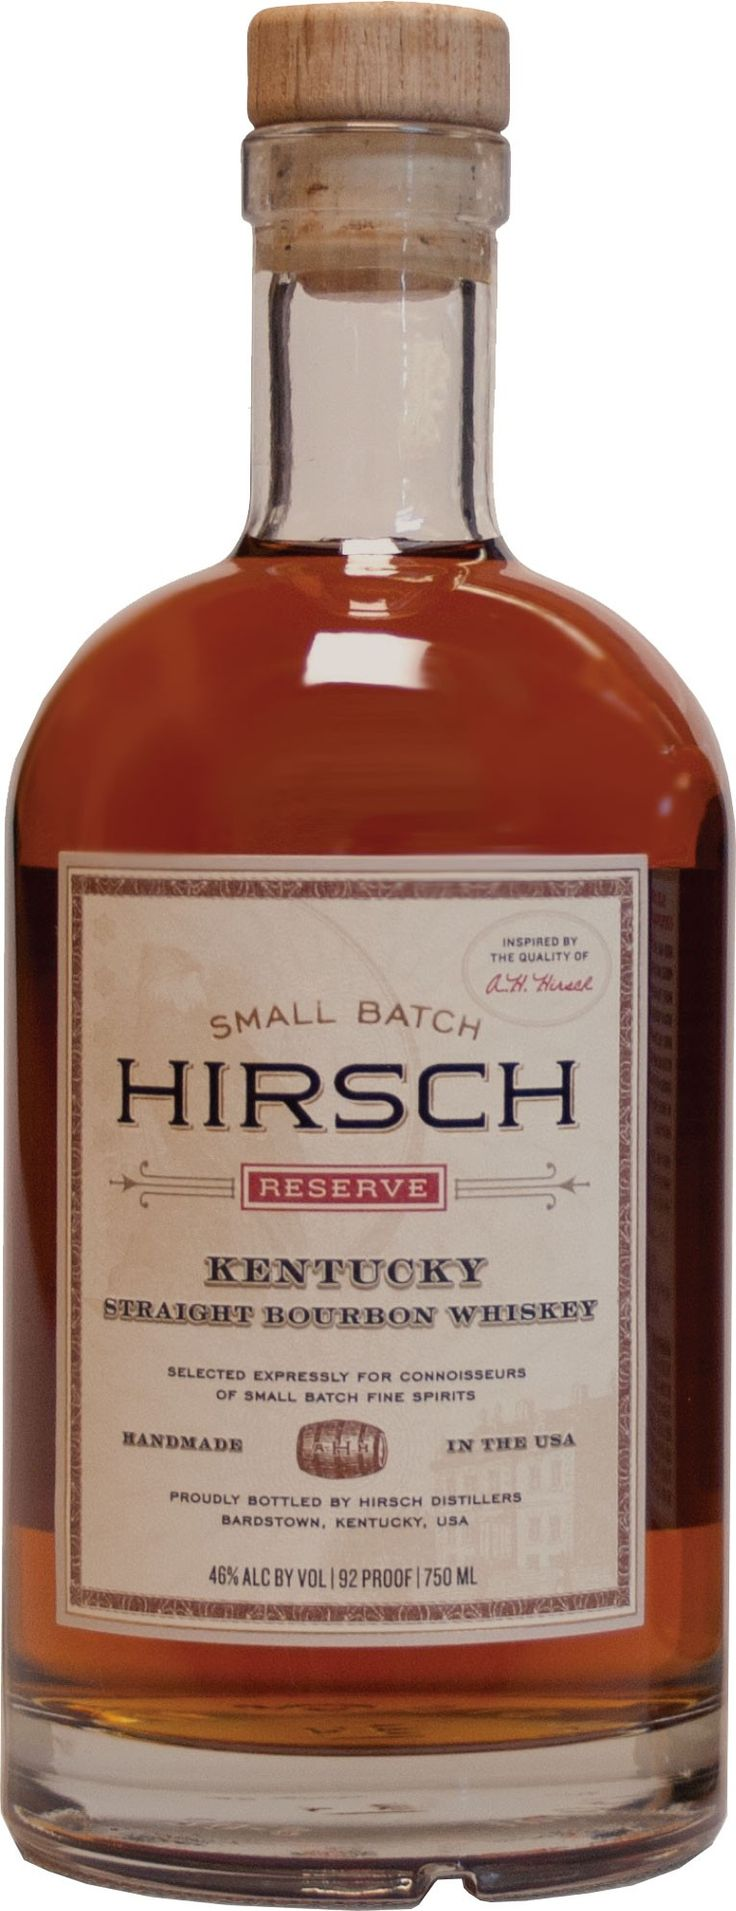 Aged for over four years, this bourbon won the Double Gold Medal at The Fifty Best Tasting Competition in 2012.